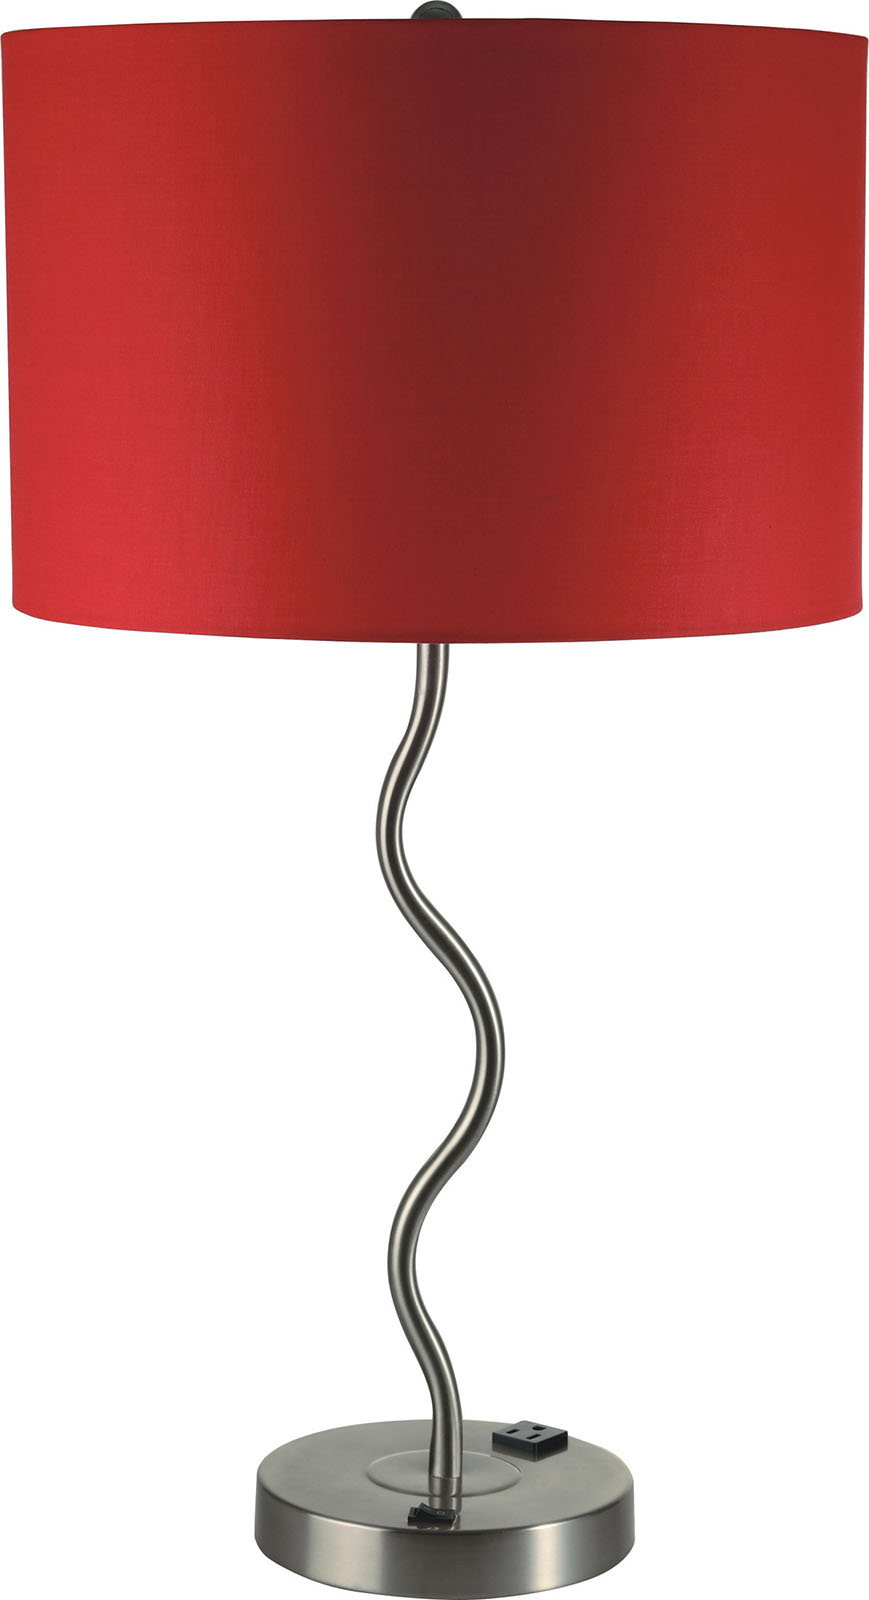 Furniture Of America L76224t Rd Table Lamp Round Chrome